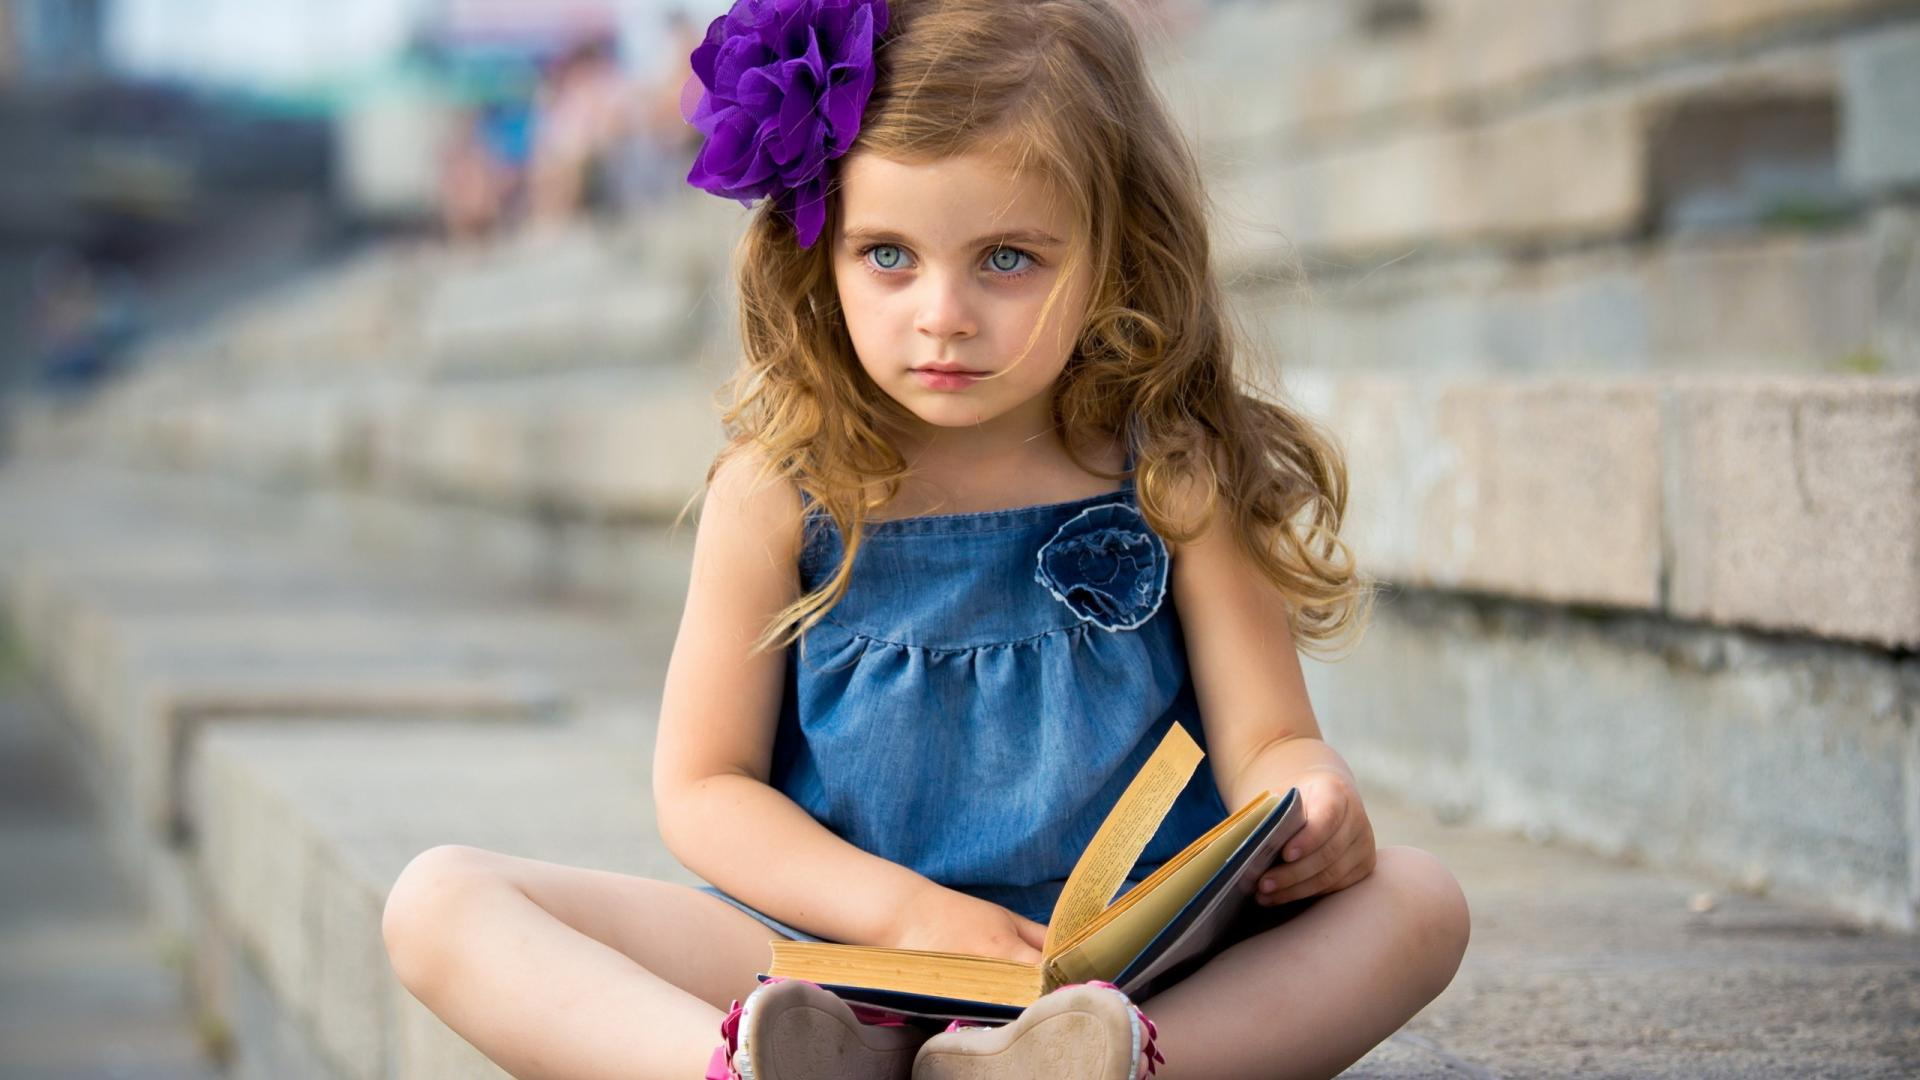 Cute Baby Girl mood book child wallpaper background 620